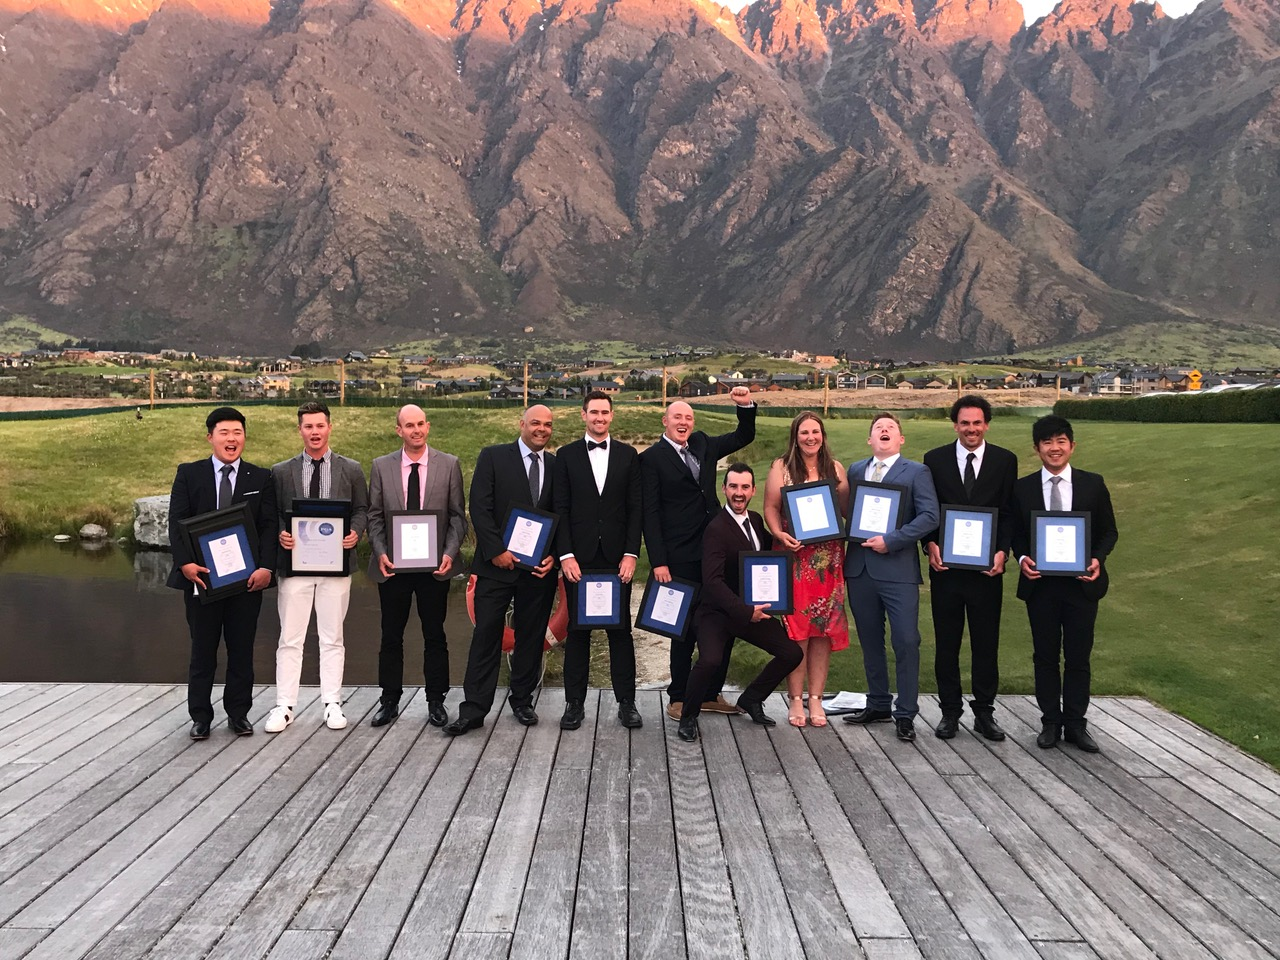 The graduating trainees for 2018 at Jacks Point in Queenstown. All now have full membership and are working in the golf industry.